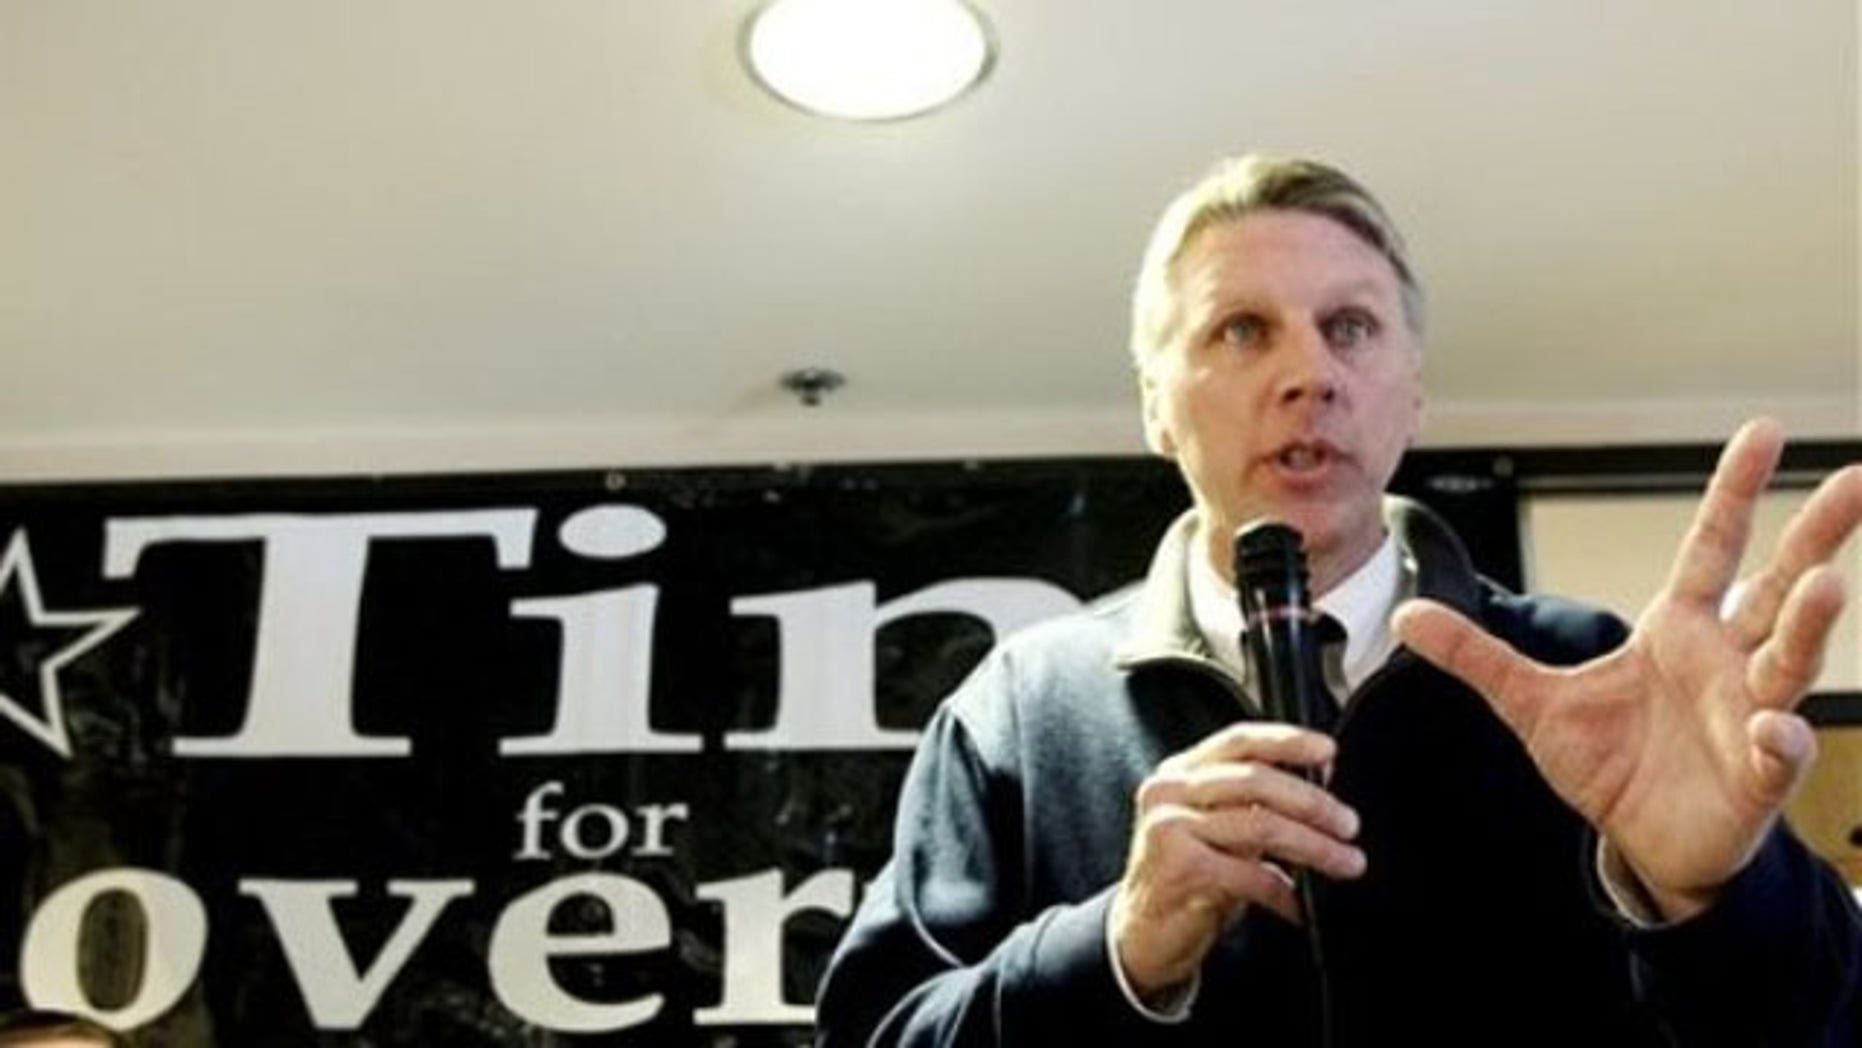 In this Feb. 13 file photo, Massachusetts Treasurer Tim Cahill speaks at his campaign headquarters in Quincy, Mass. (AP Photo)